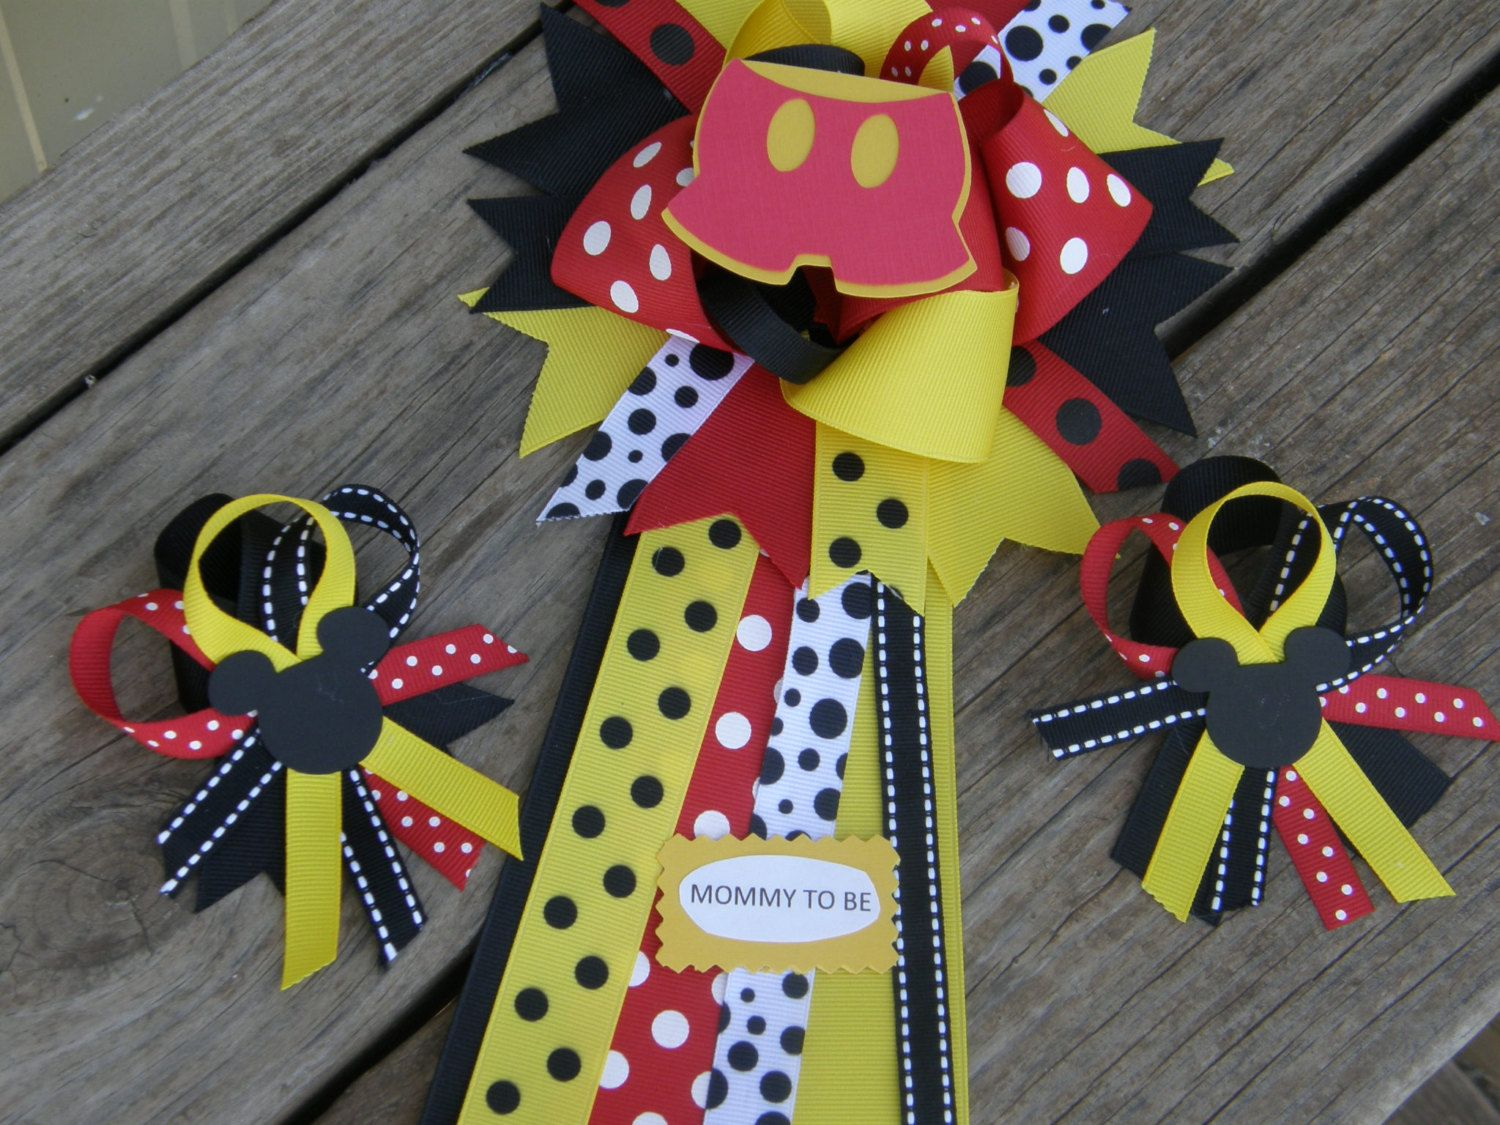 Find This Pin And More On Mickey Mouse Baby Shower By Marianaduron33.